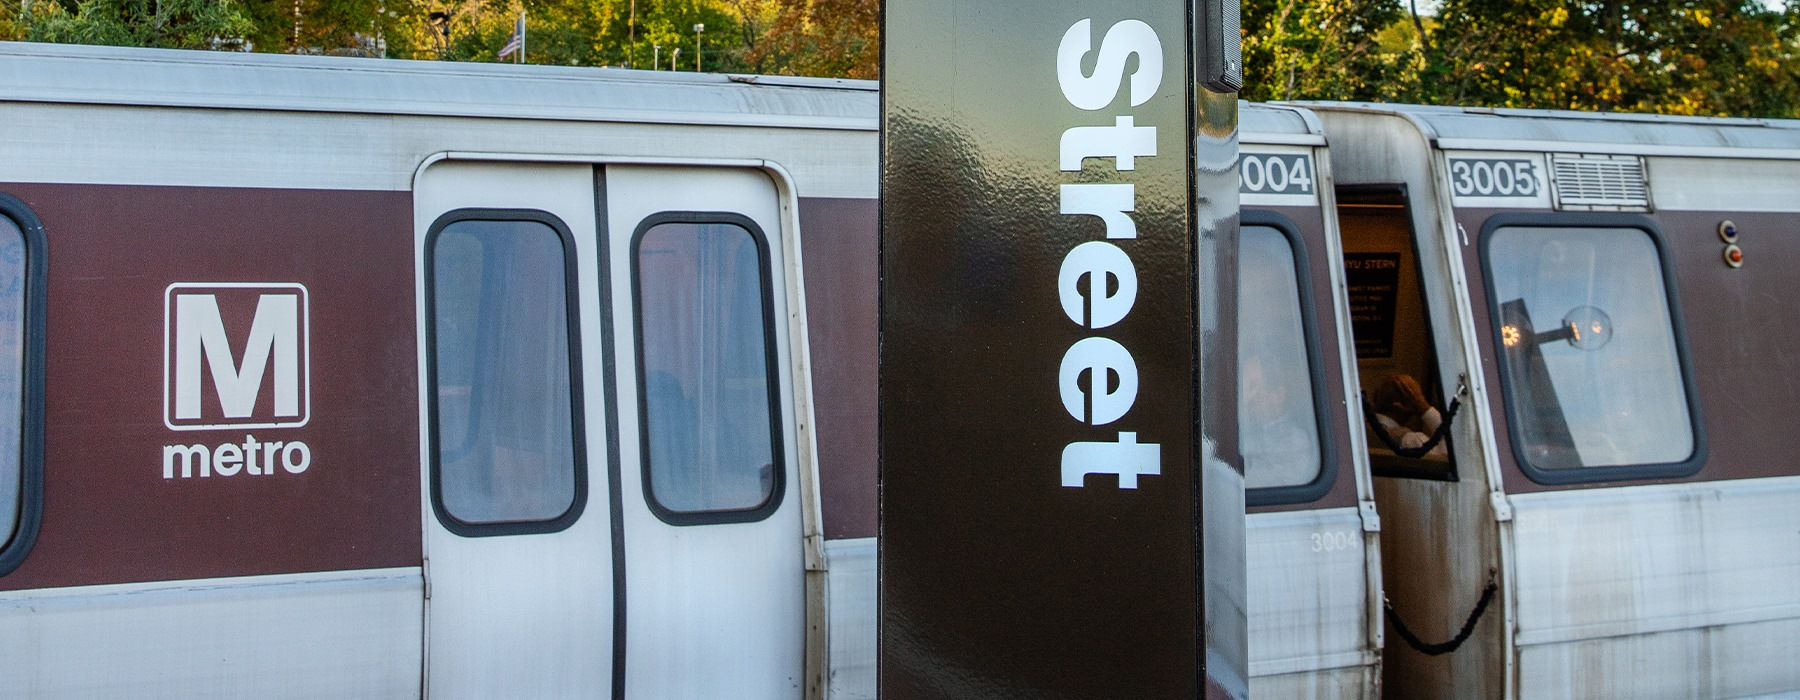 A metro rail car is parked at the terminal waiting for passengers.